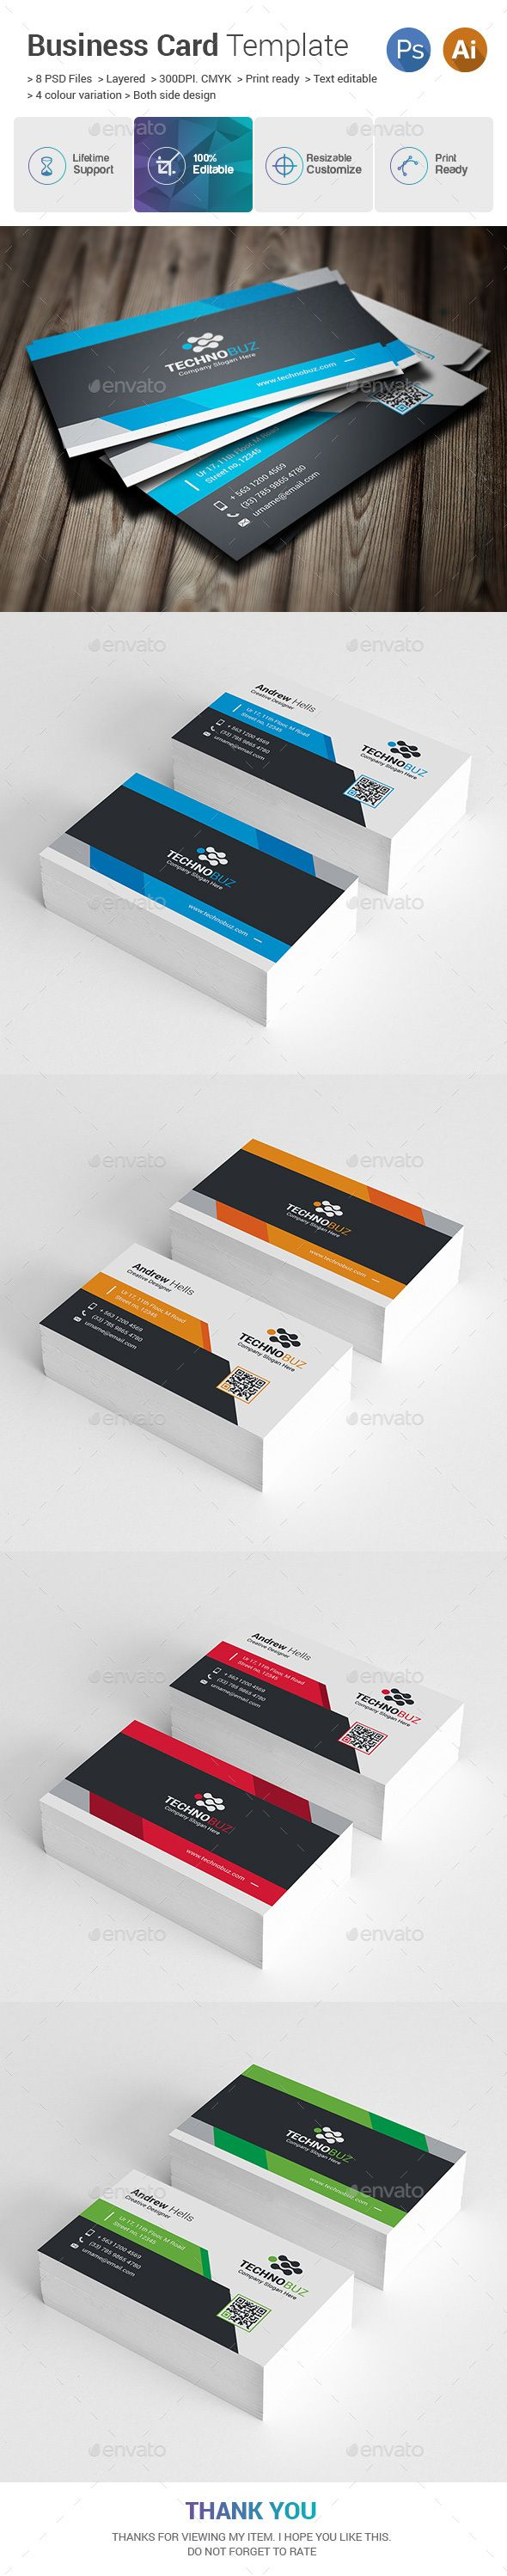 Business Cards Business Cards Card Templates And Buy Business Cards - Buy business card template